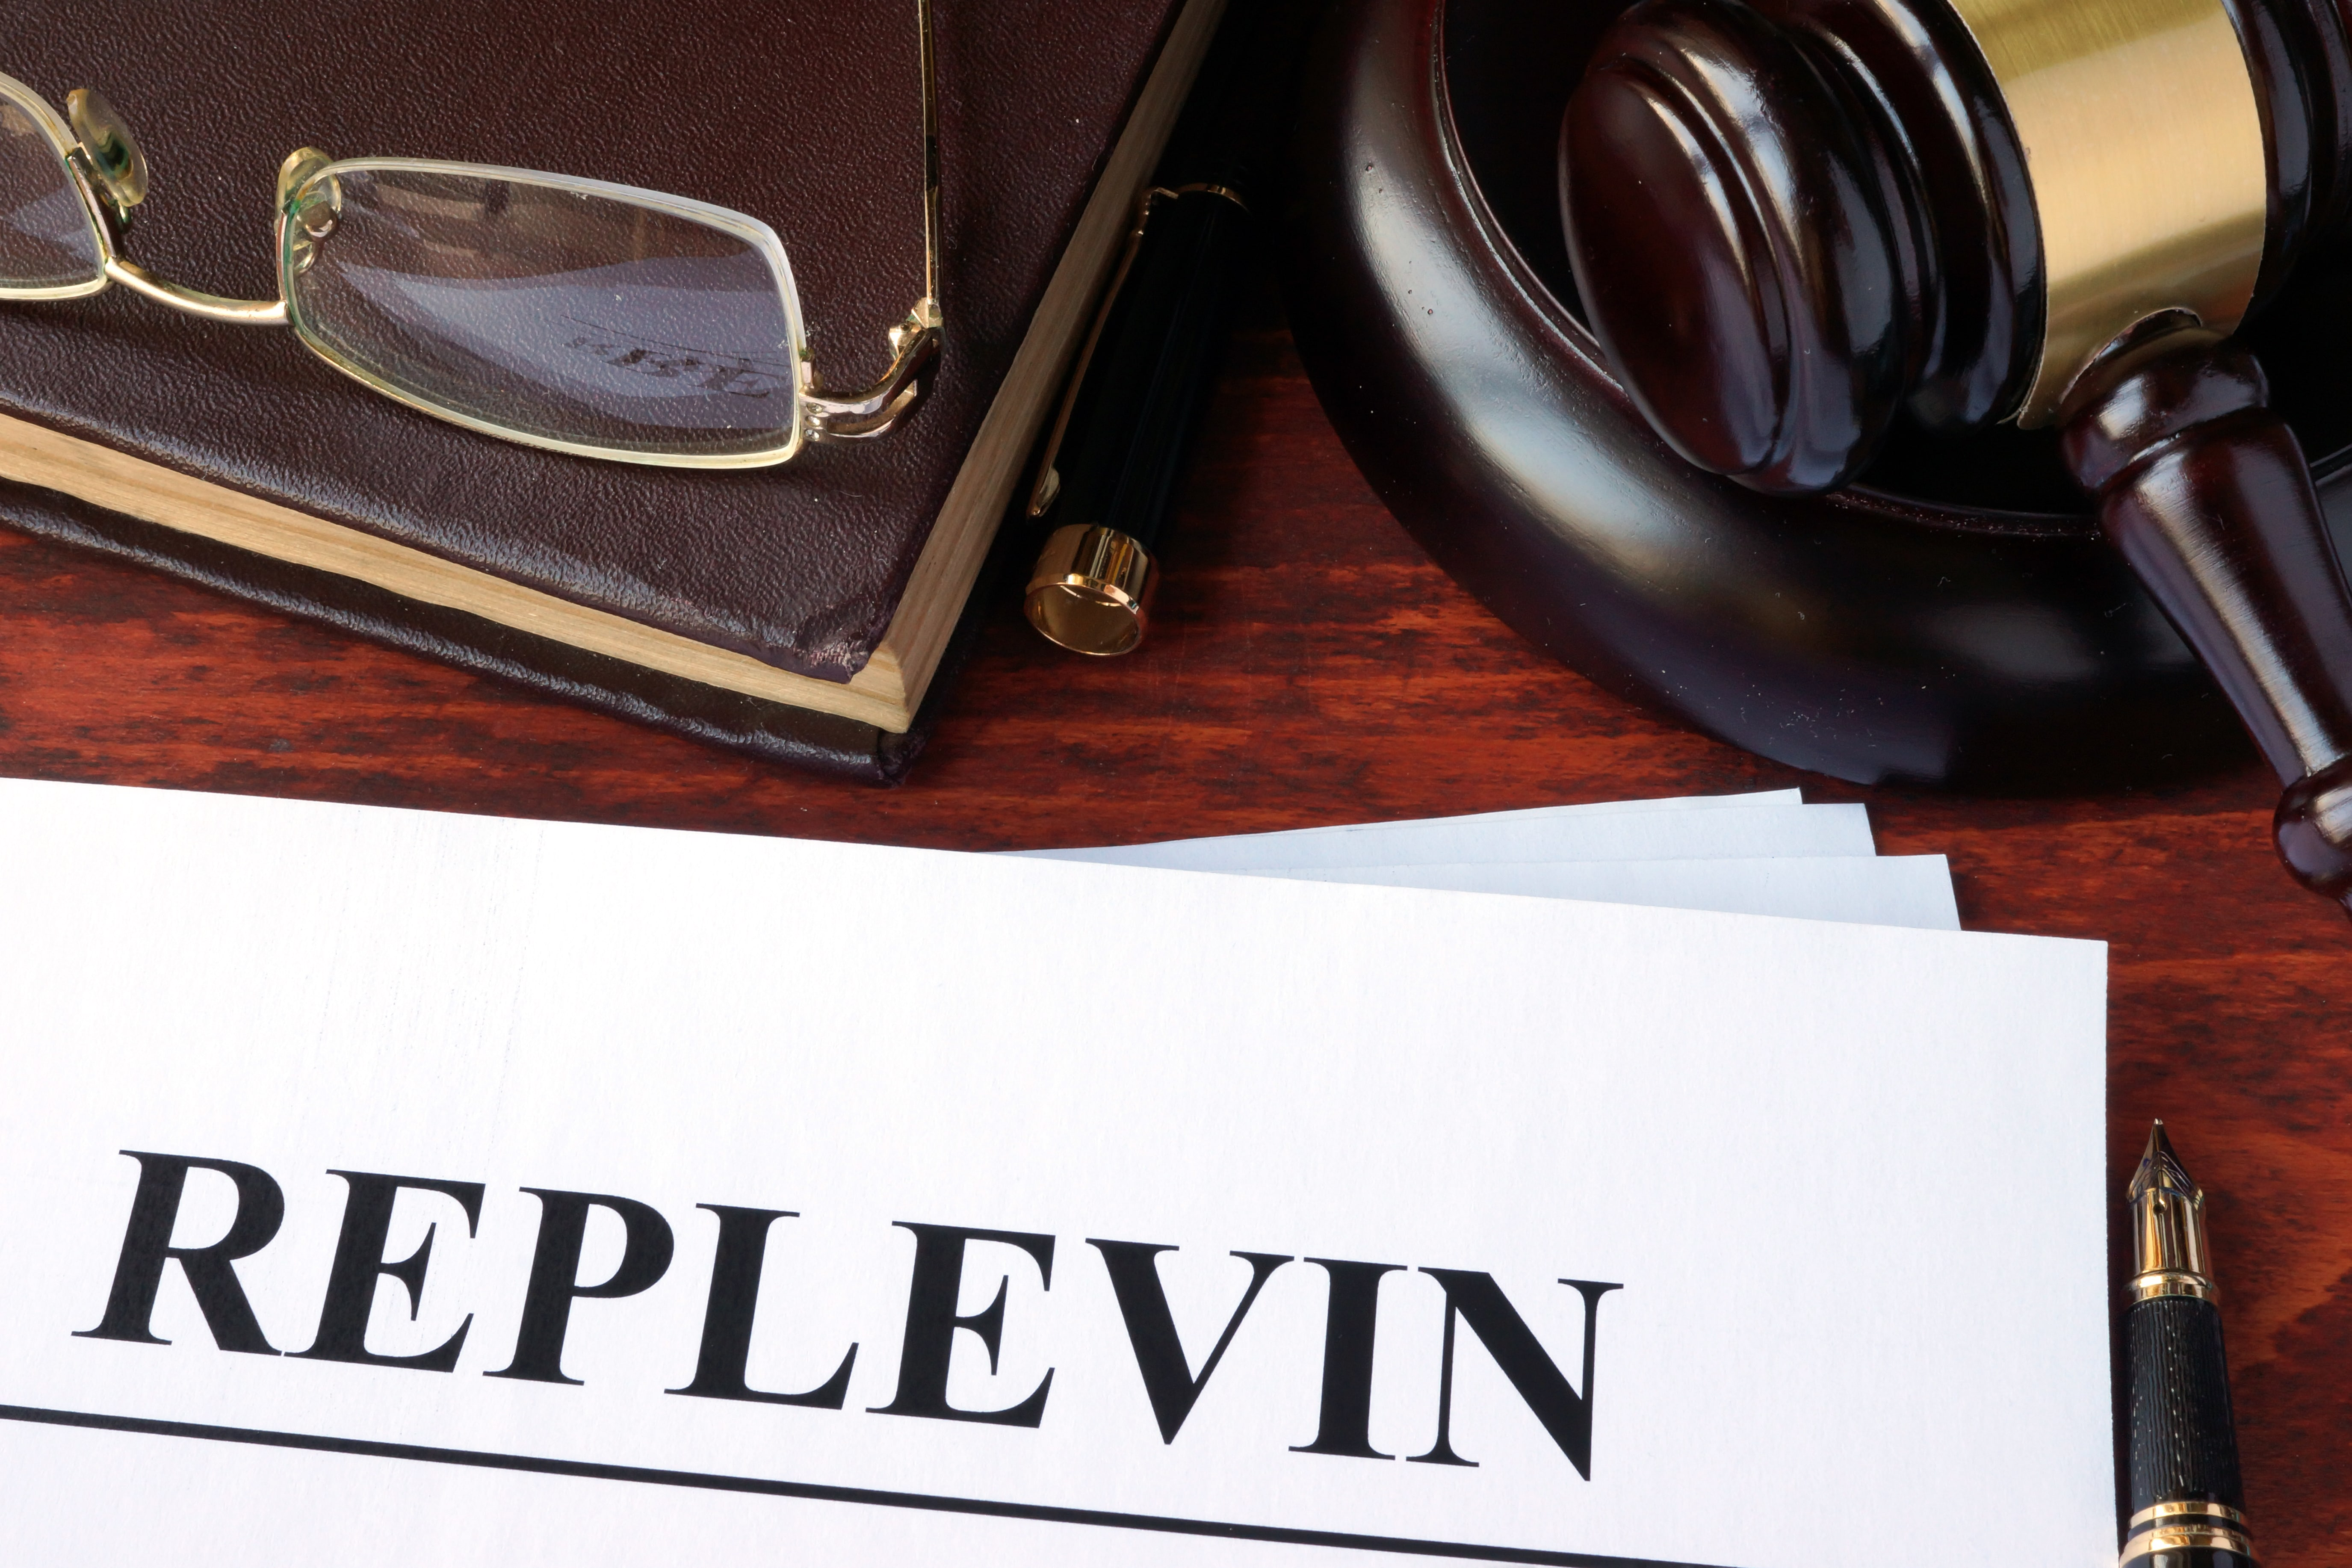 Replevin Action